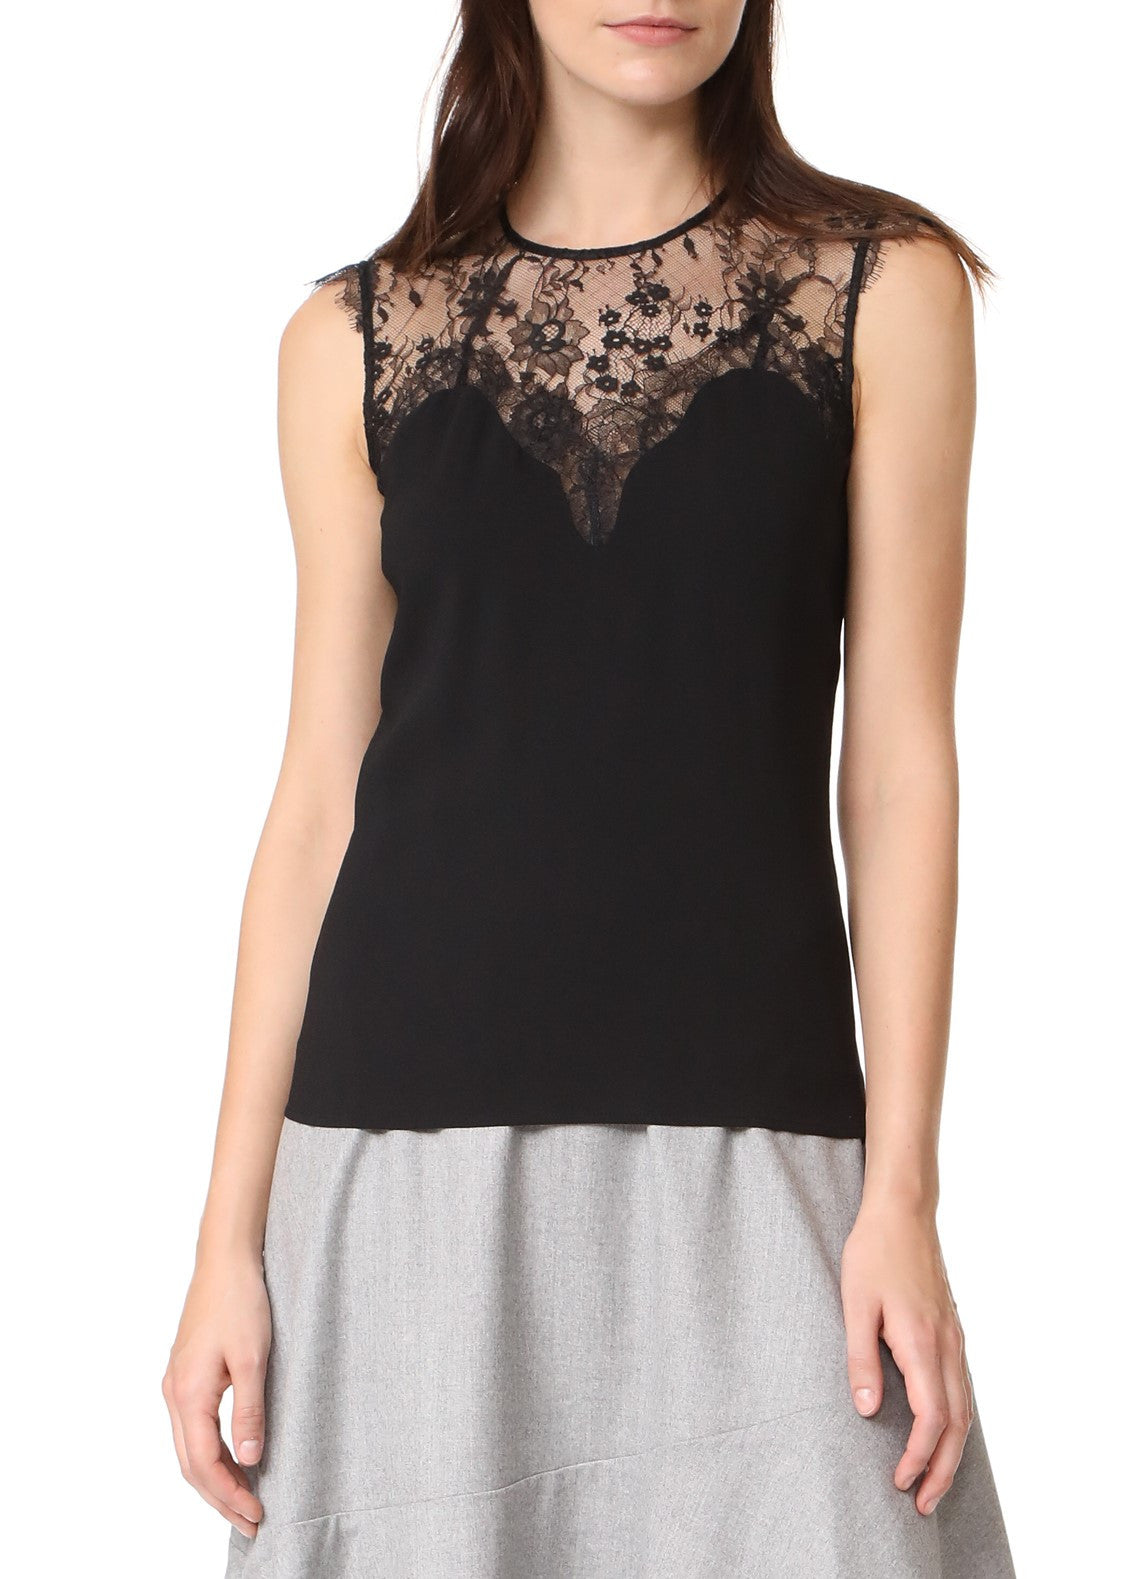 Carven lace top black